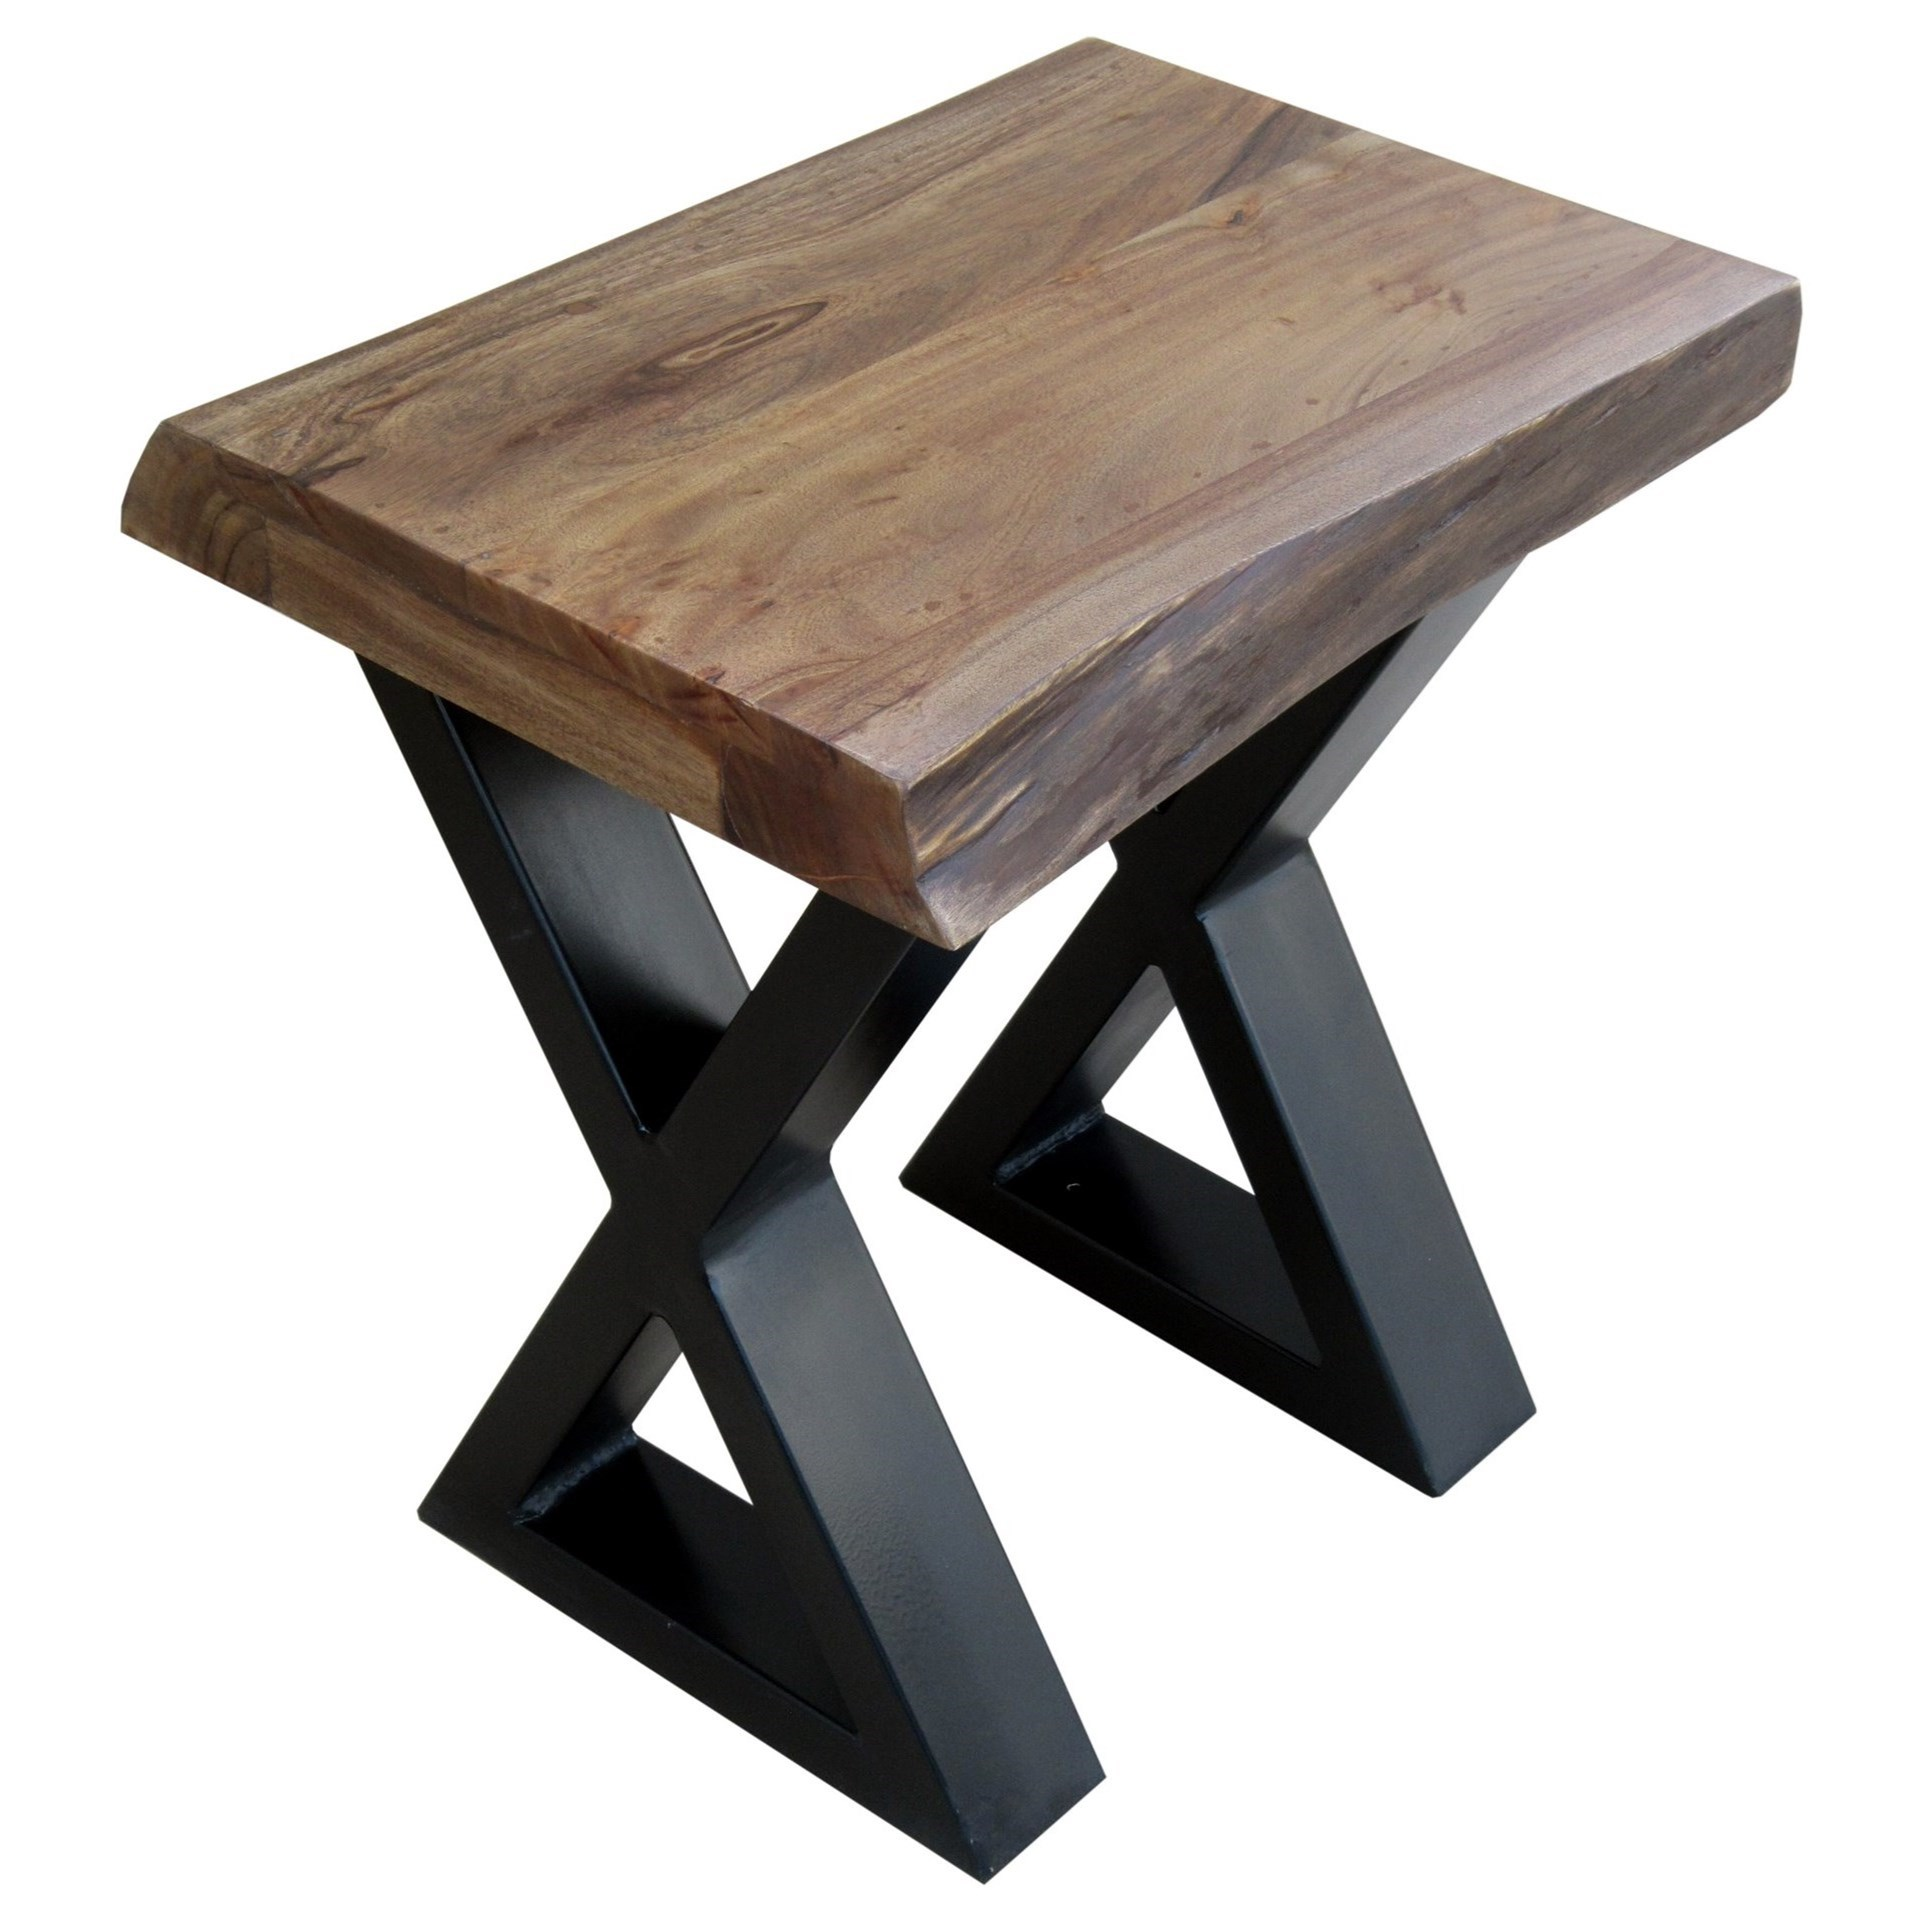 Stein World Living On The Edge Chairside Table   Item Number: 321 041